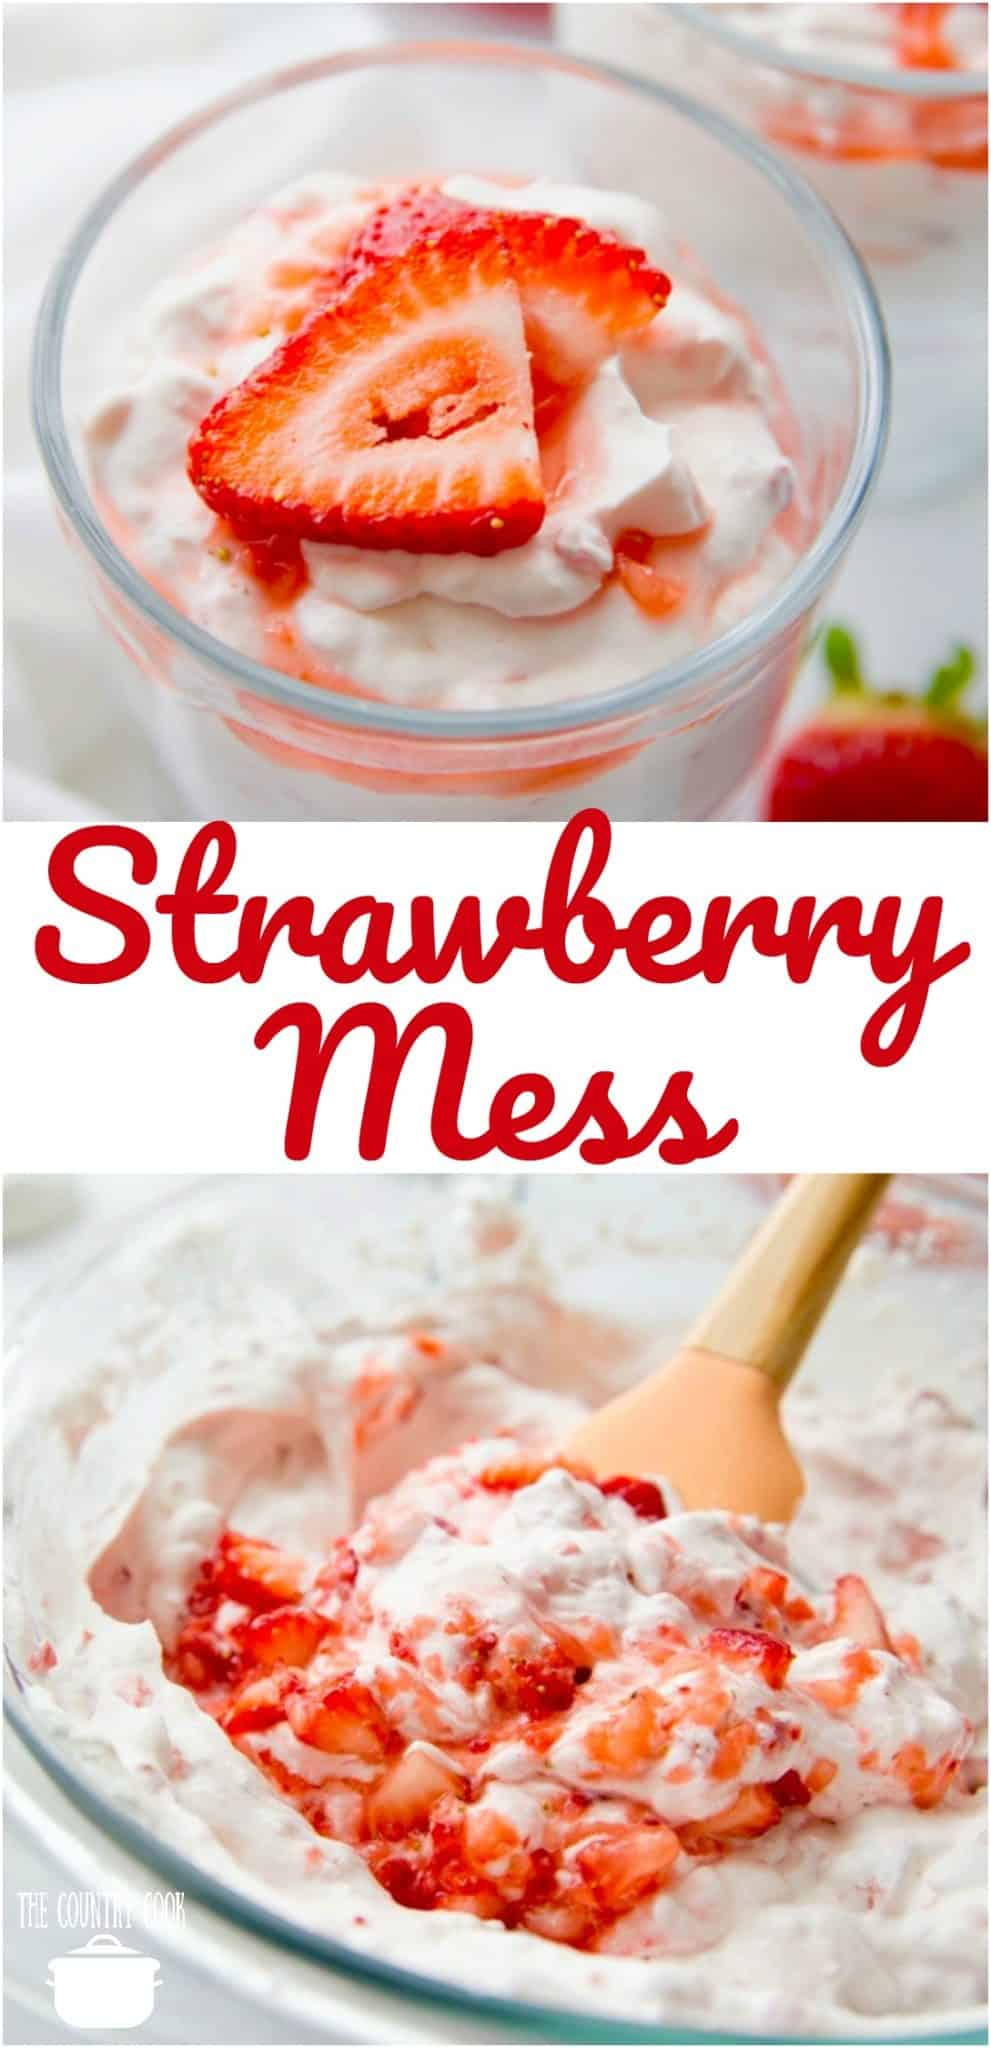 Strawberry Mess (also known as Eton Mess) is made with freshly-made meringue cookies, fresh whipped cream and sweetened strawberries.